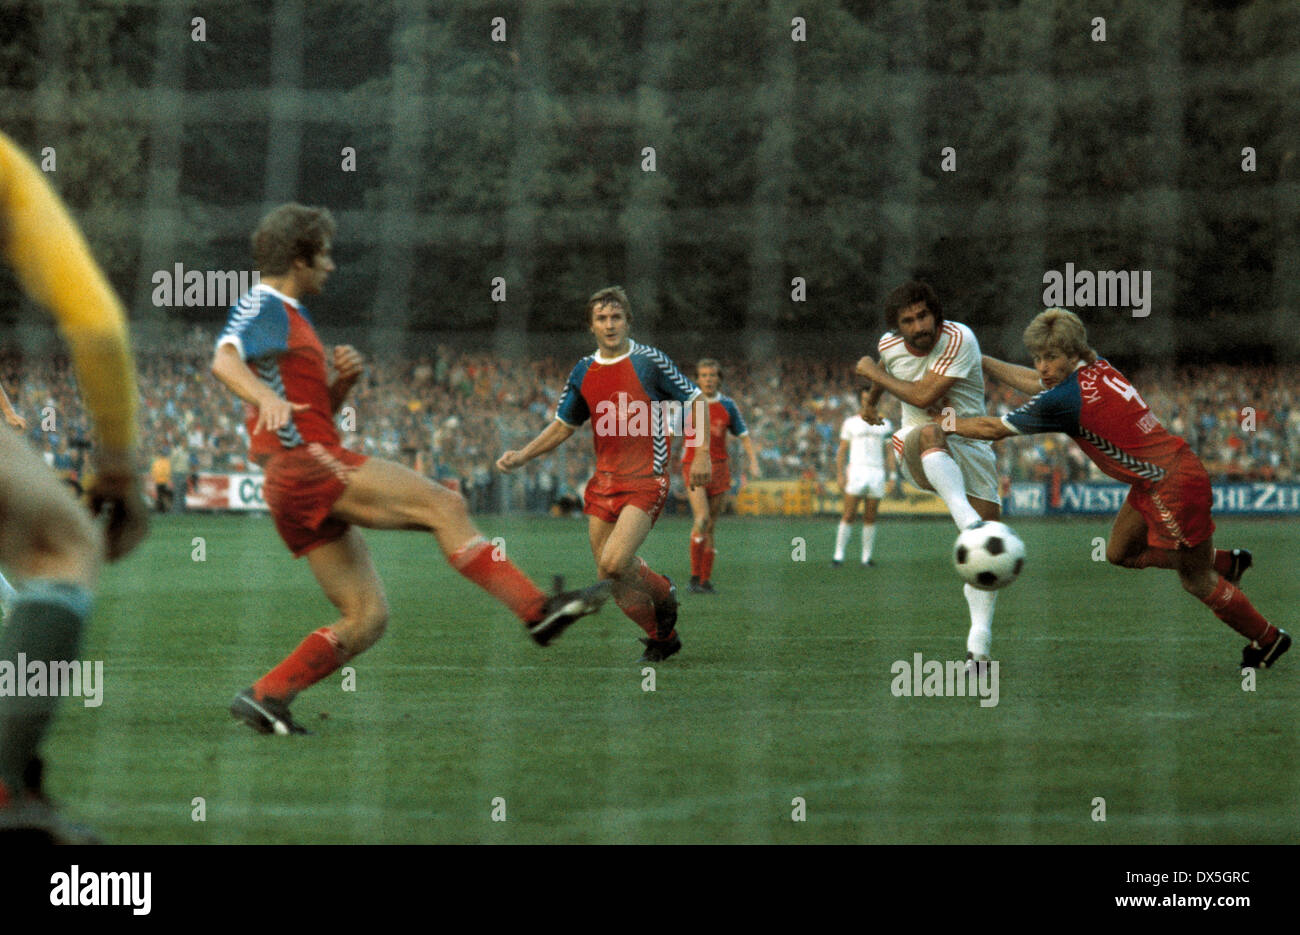 football, Bundesliga, 1975/1976, Grotenburg Stadium, FC Bayer 05 Uerdingen versus FC Bayern Munich 2:1, shot on goal by Gerd Mueller (FCB) 2.f.r., three Uerdingen players surrounding him, right Norbert Brinkmann (Uerdingen) - Stock Image